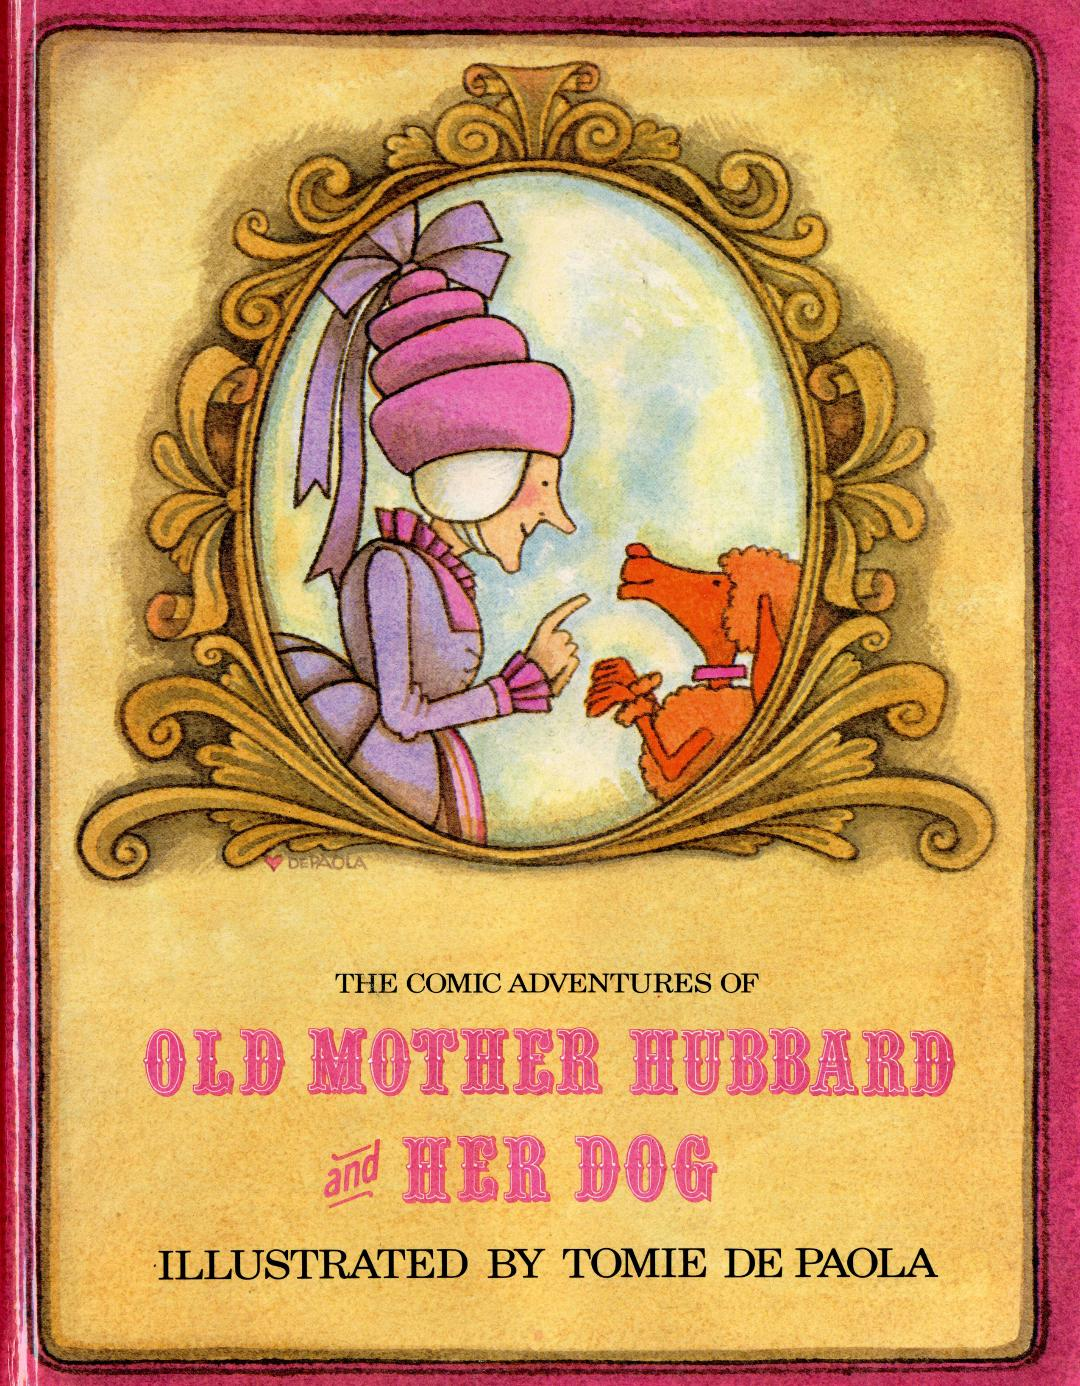 Comic Adventures of Old Mother Hubbard, The.jpg